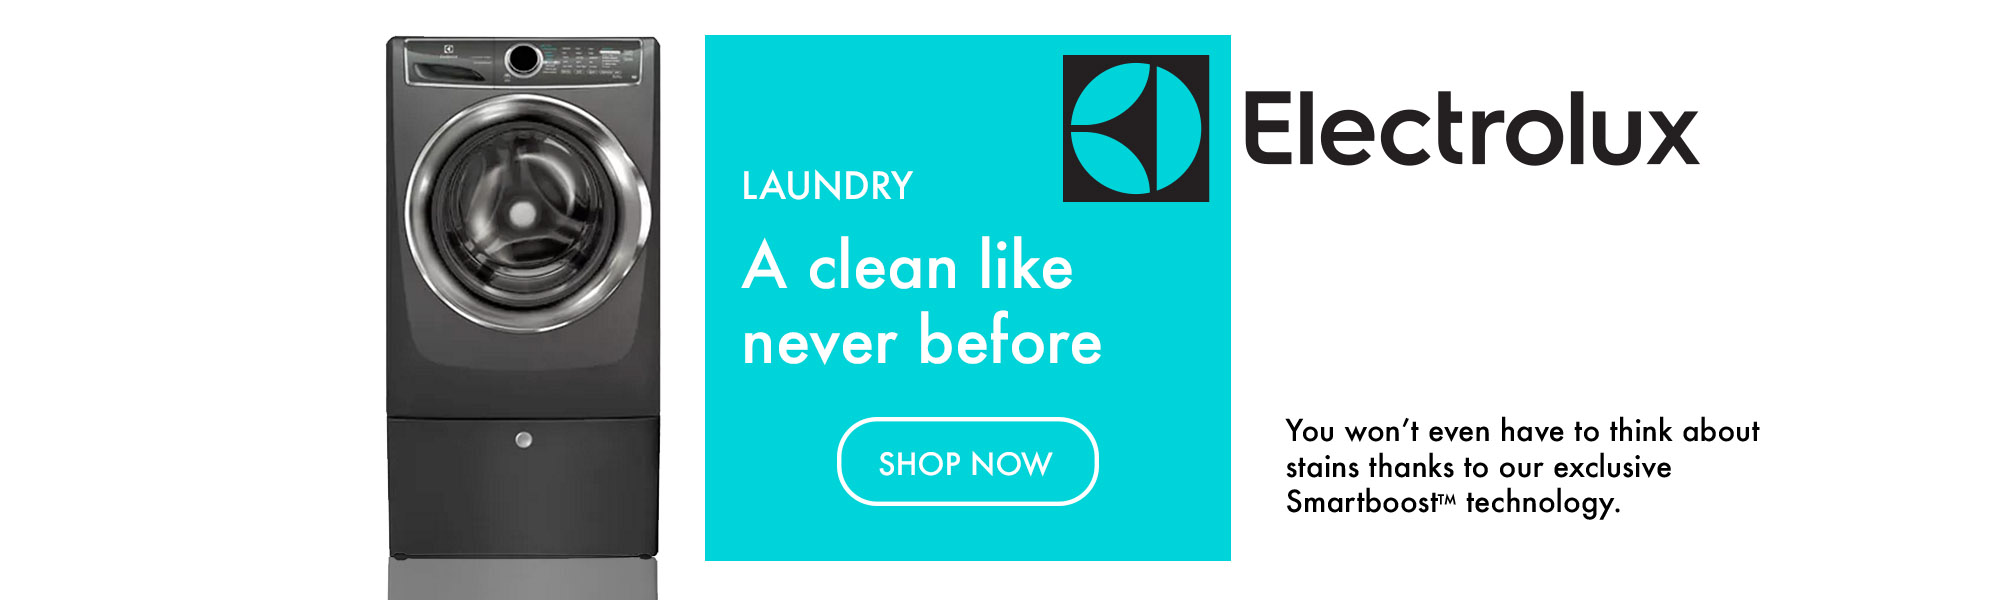 Electrolux Laundry banner